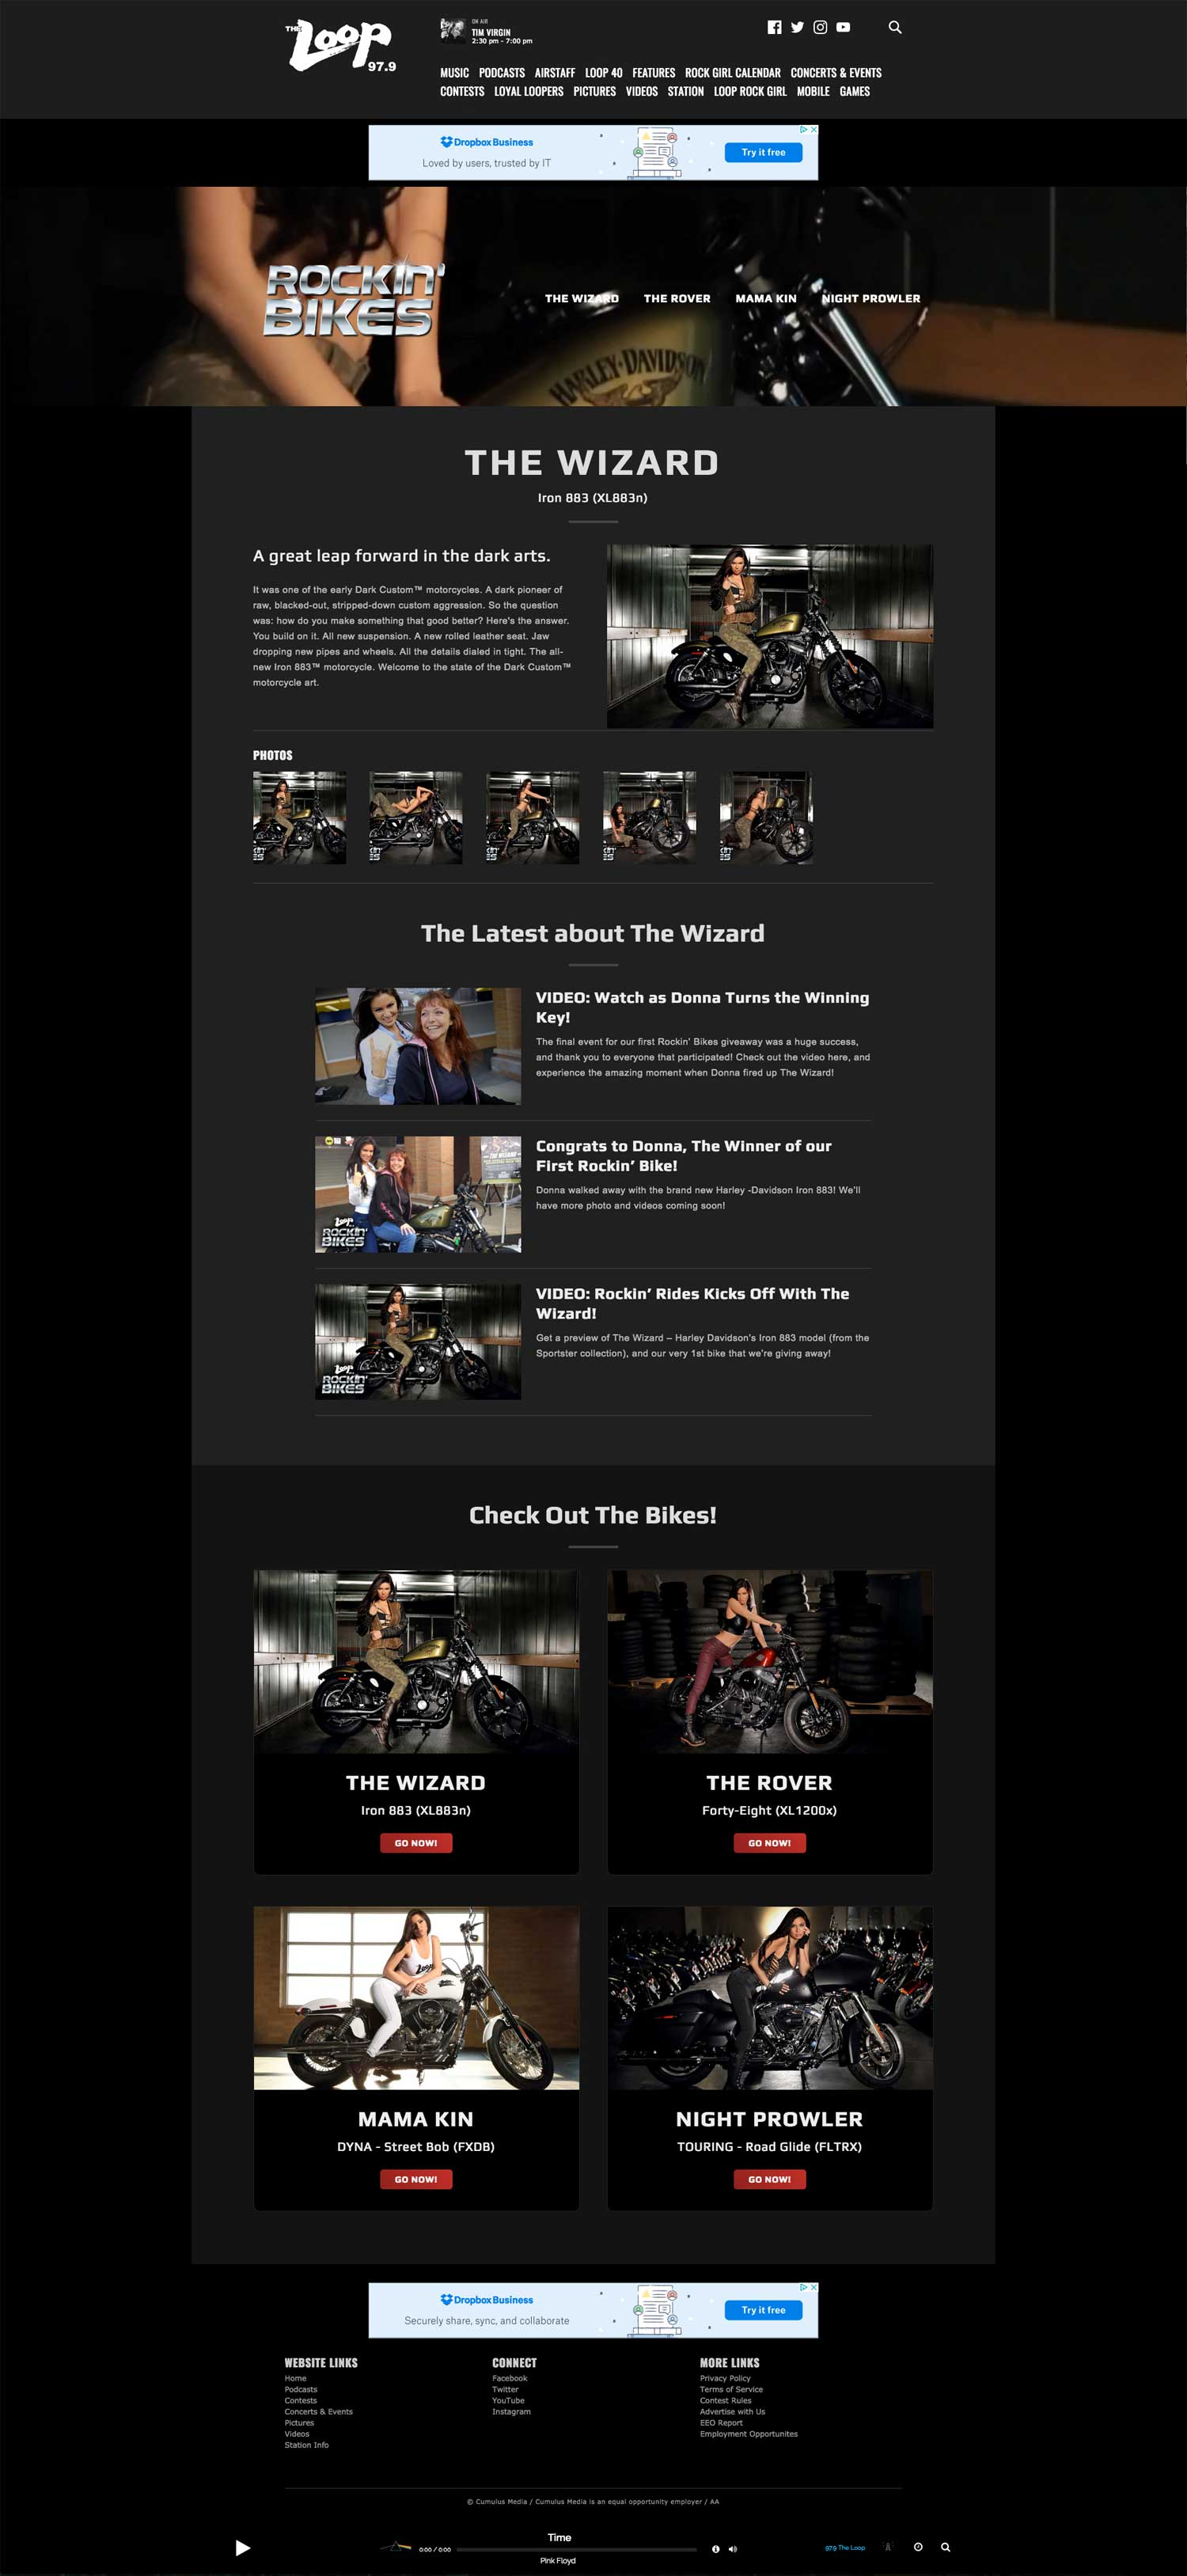 Rockin' Bikes - The Wizard Page - Browser View